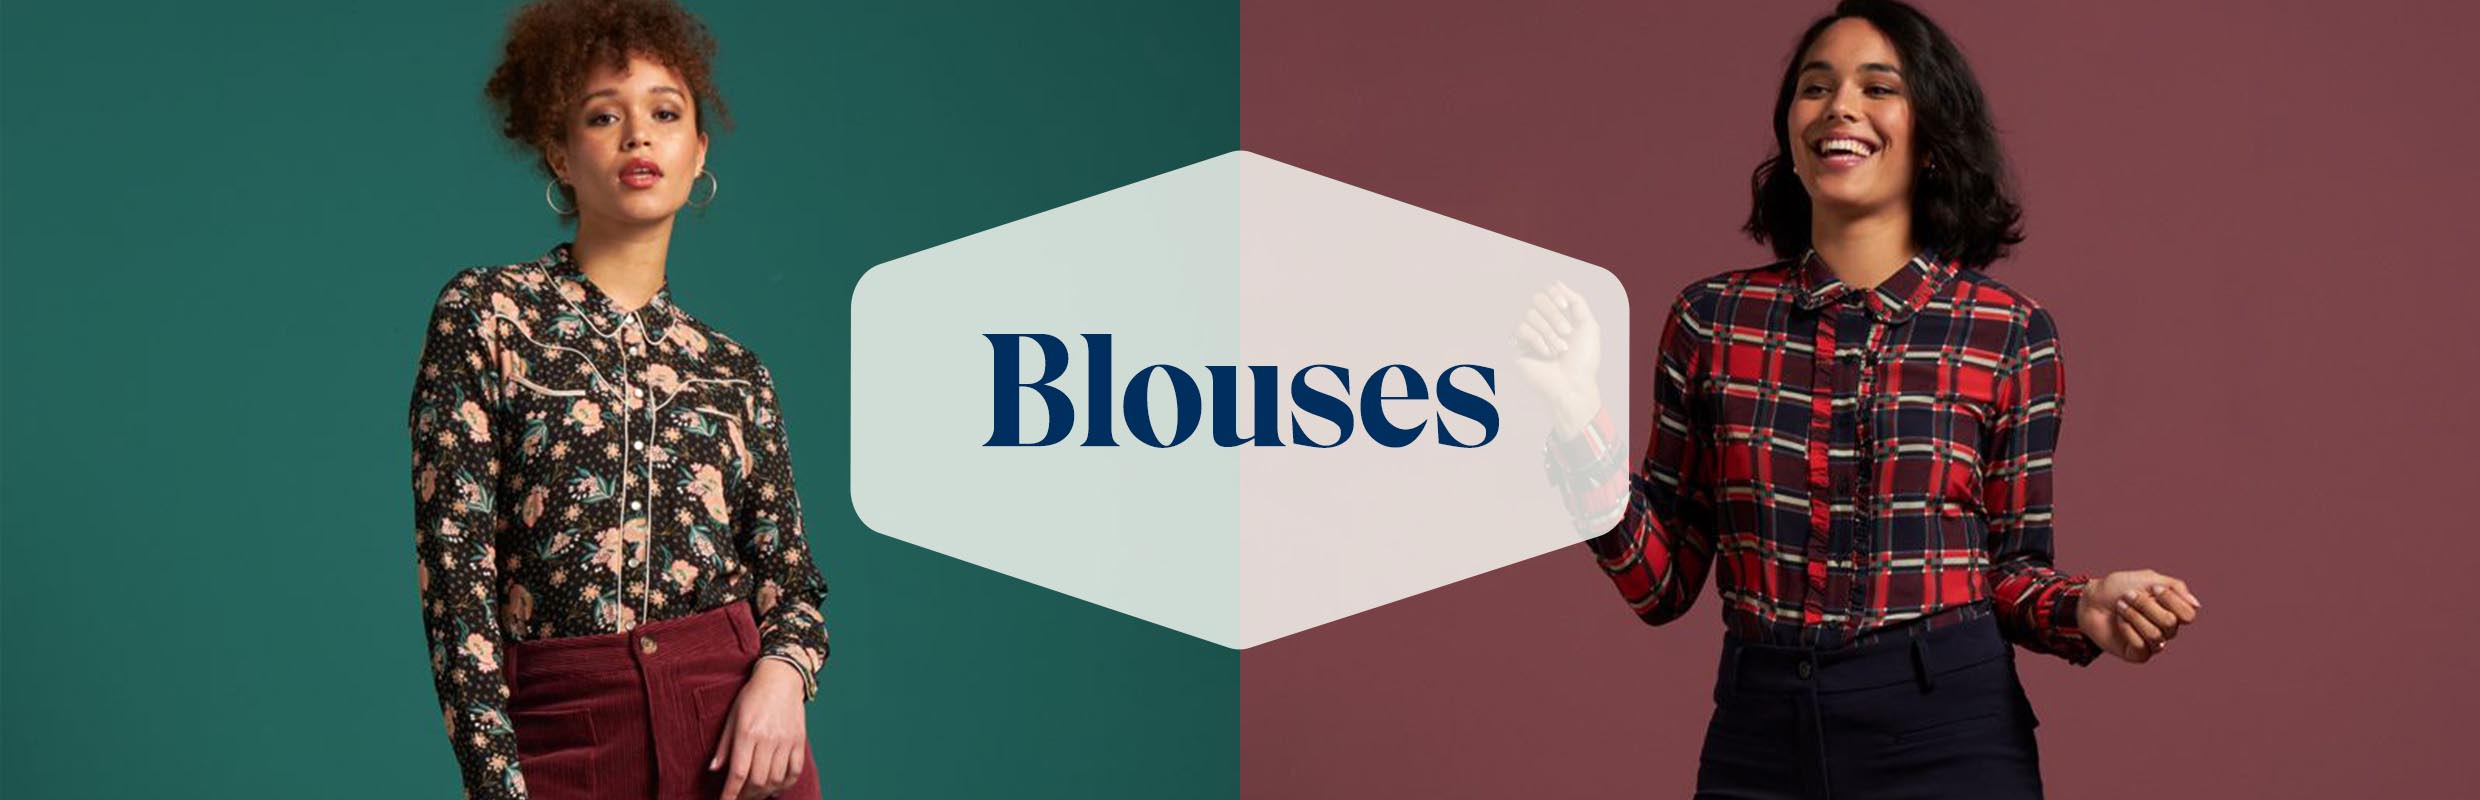 Blouses